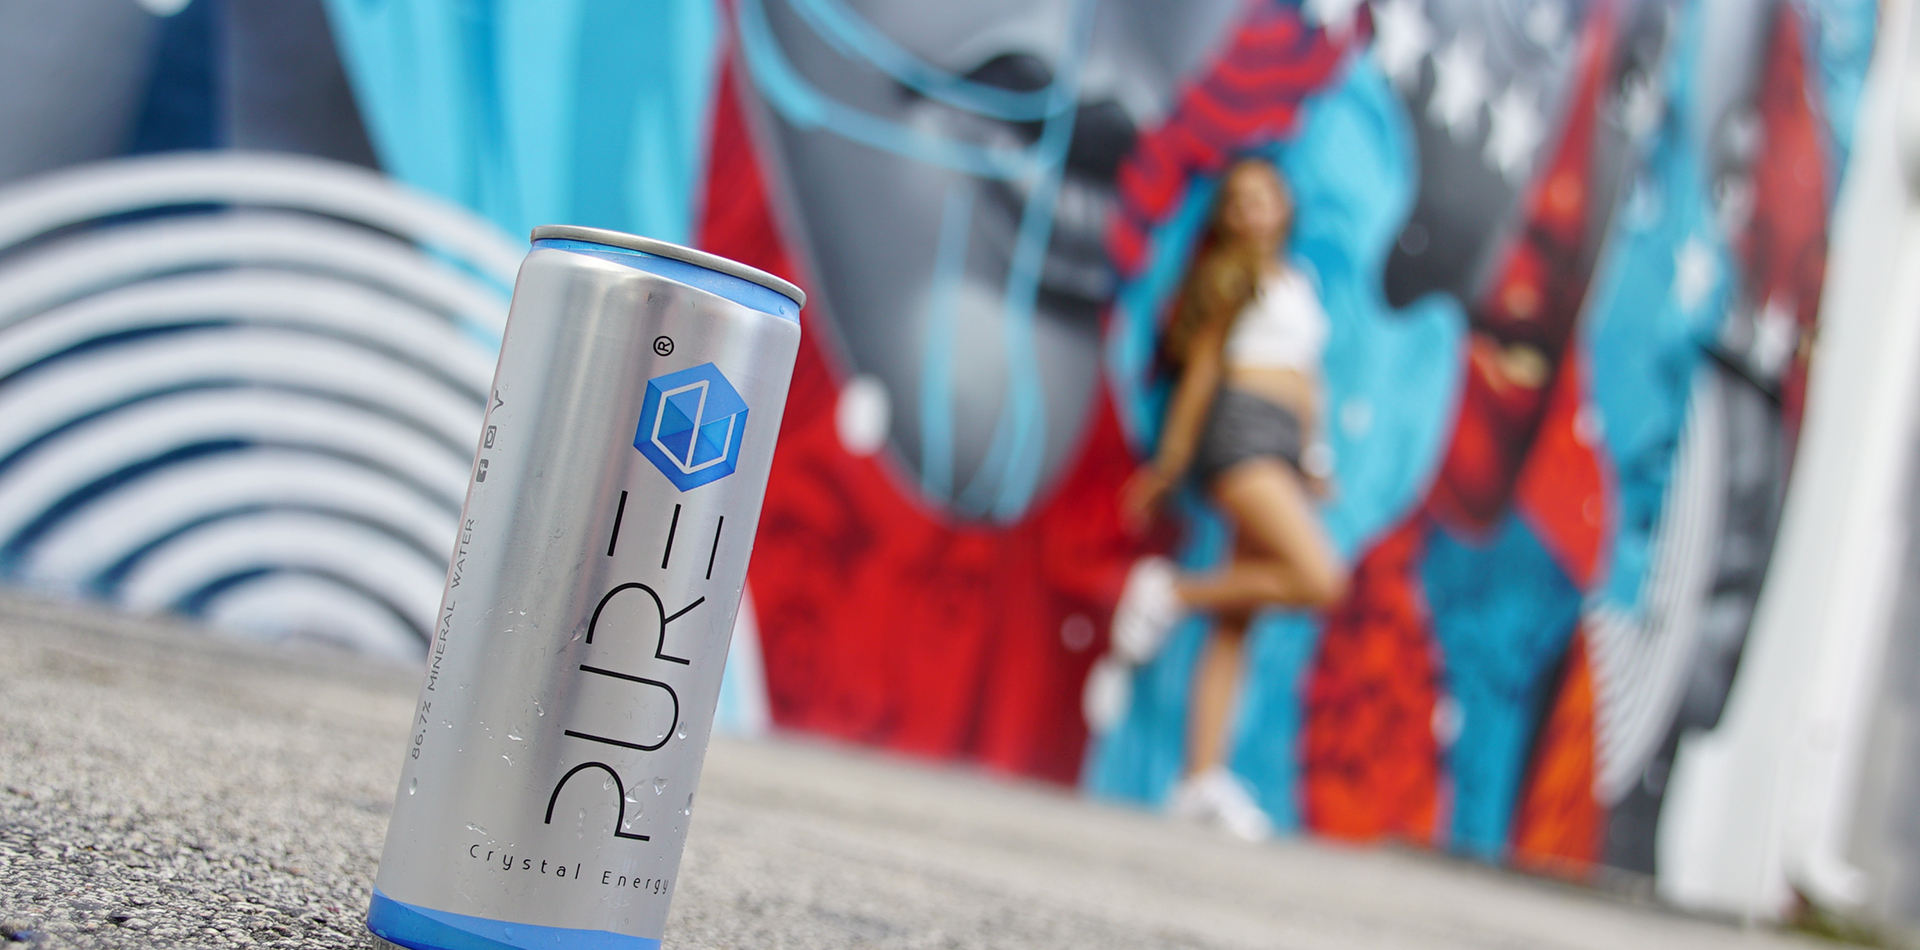 The Crystal Clear Energy Drink